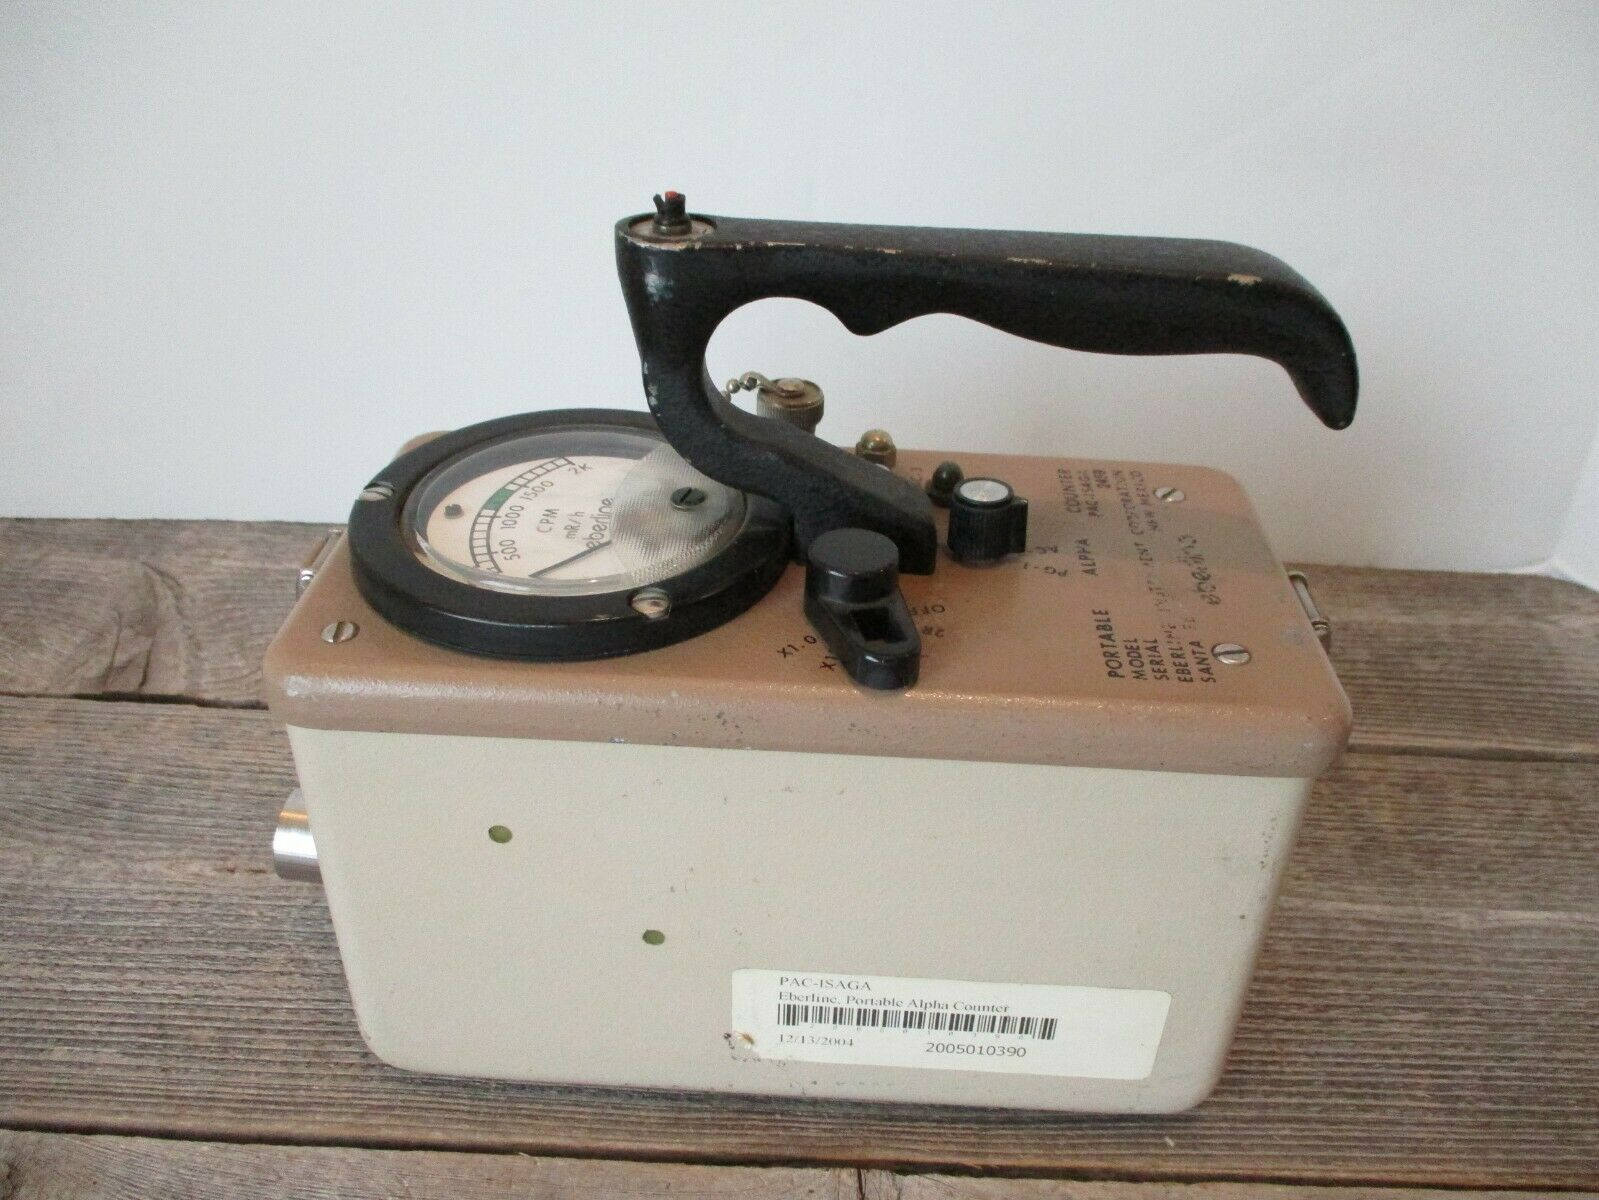 s l1600 - EBERLINE INSTRUMENTS PAC-ISAGA 2459 GEIGER COUNTER SURVEY METER COLD WAR